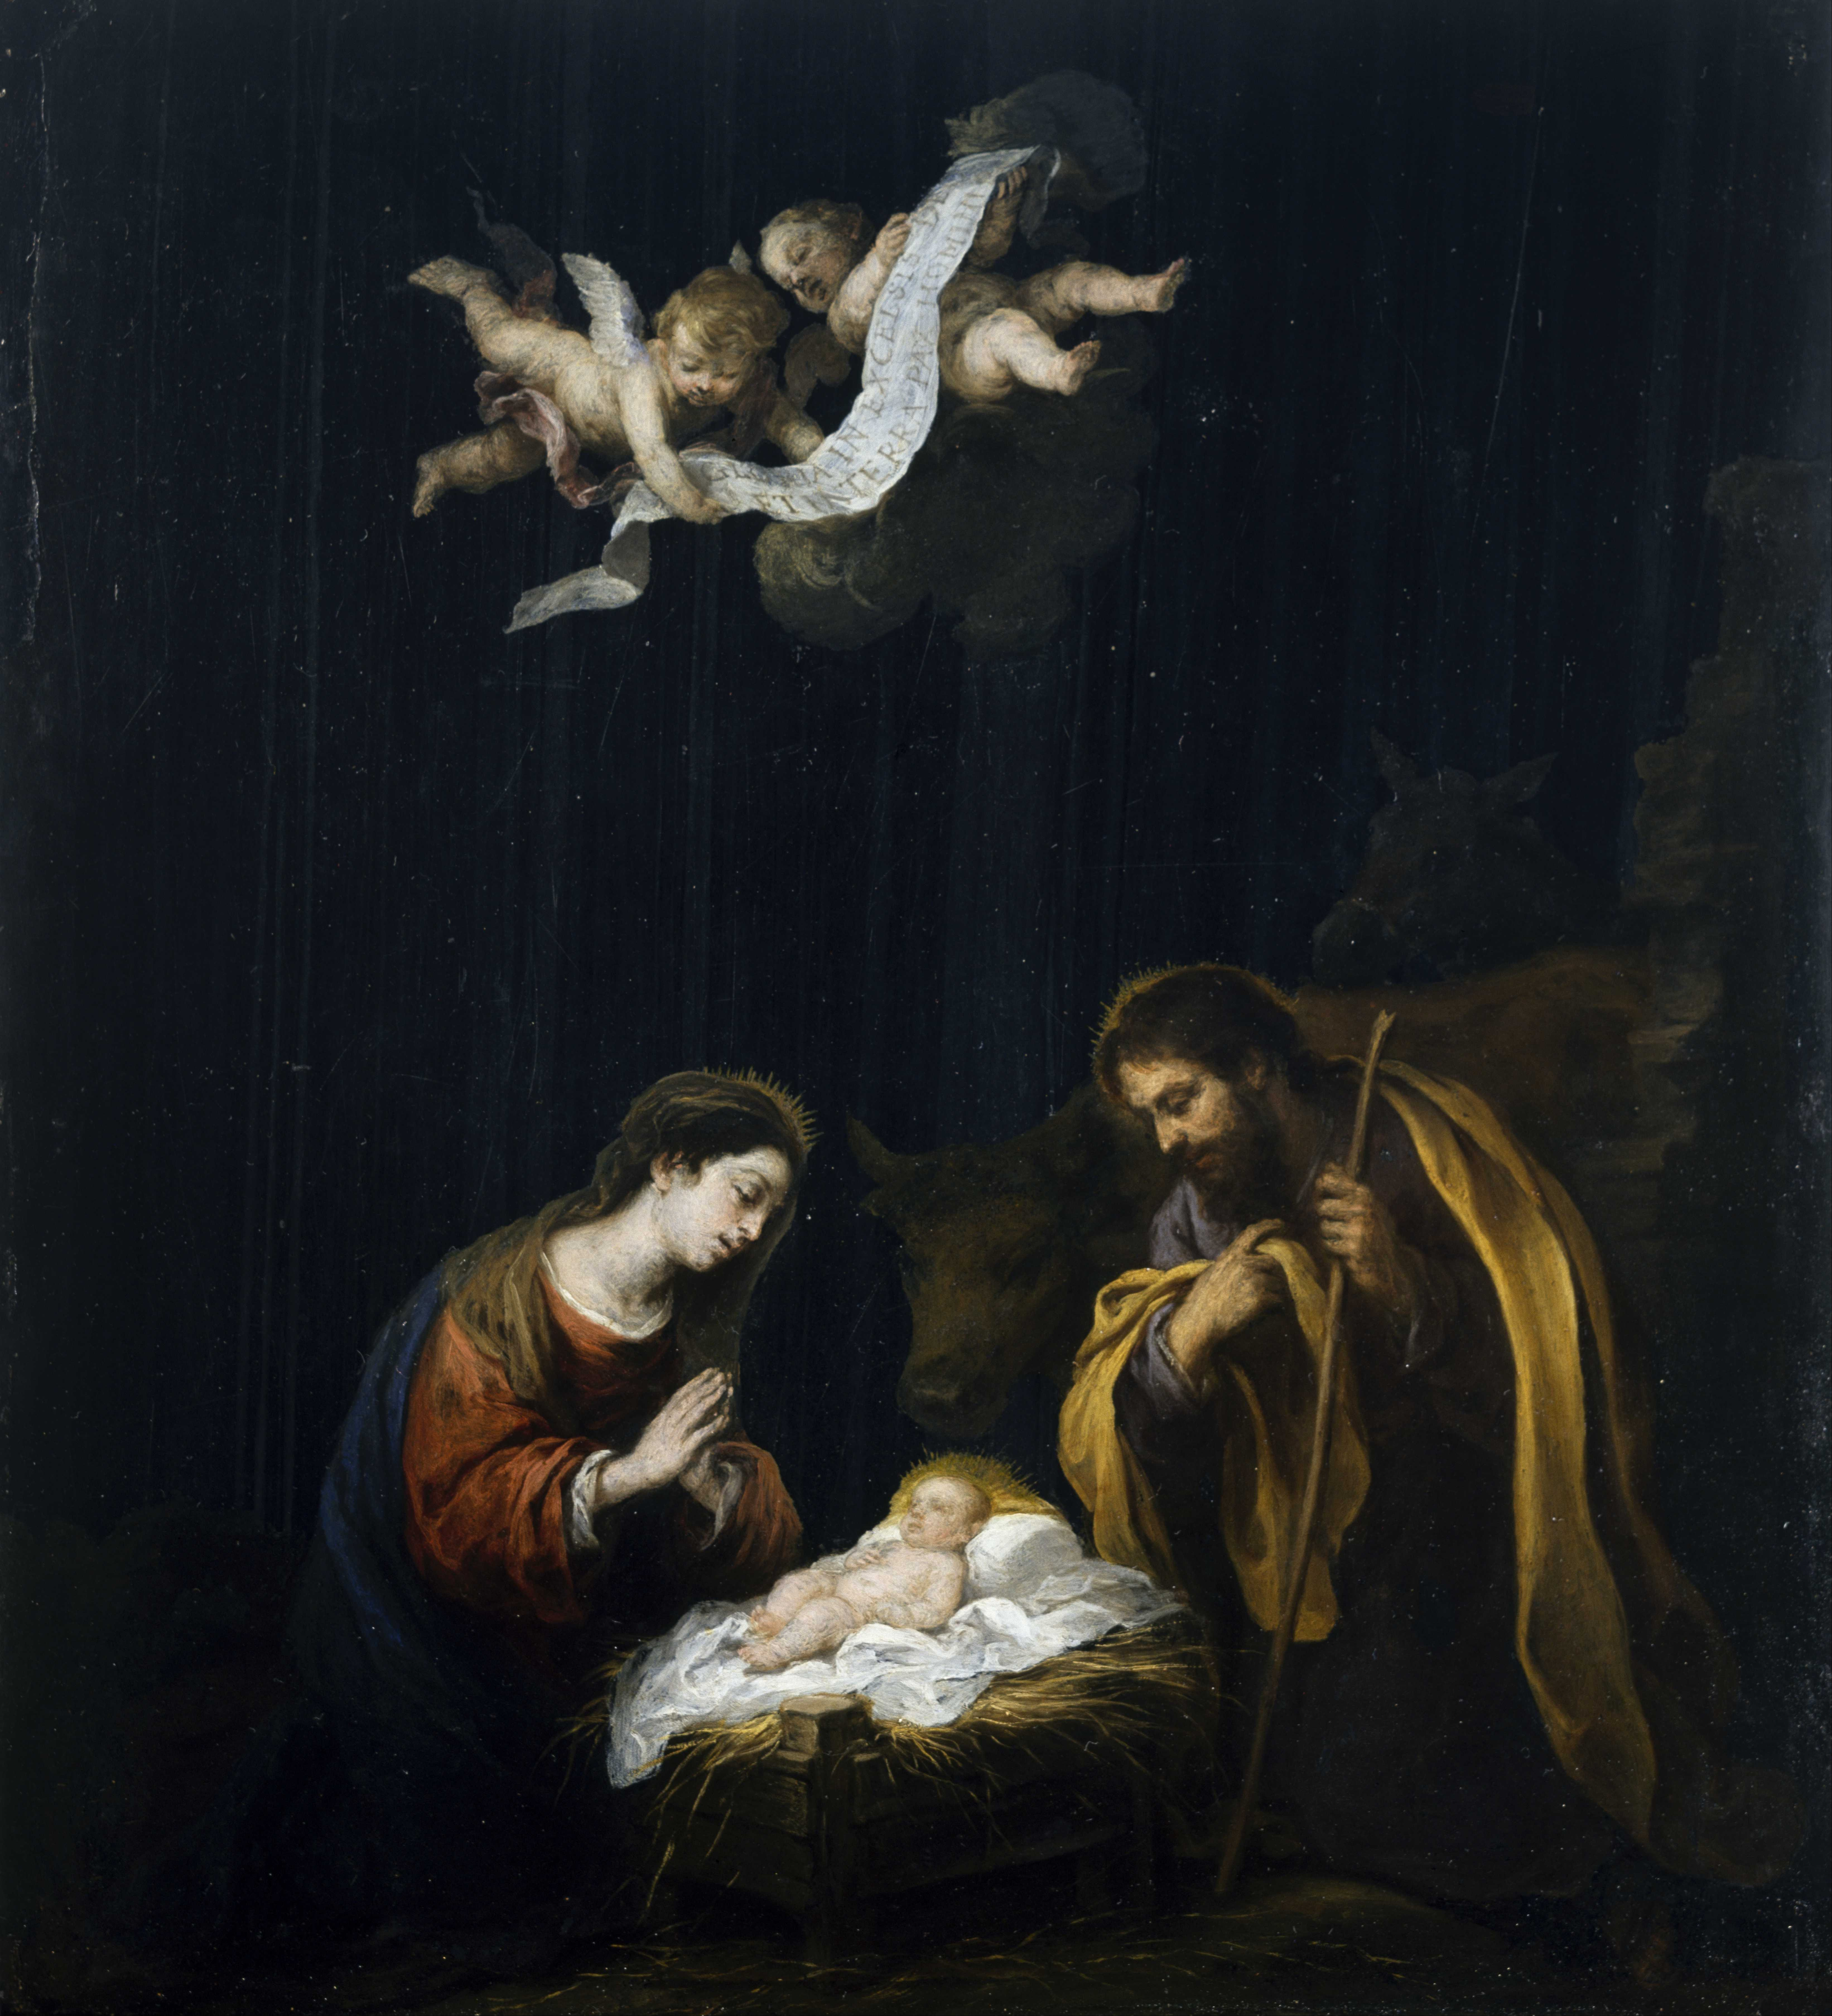 https://upload.wikimedia.org/wikipedia/commons/2/2c/Bartolom%C3%A9_Esteban_Murillo_-_The_Nativity_-_Google_Art_Project.jpg